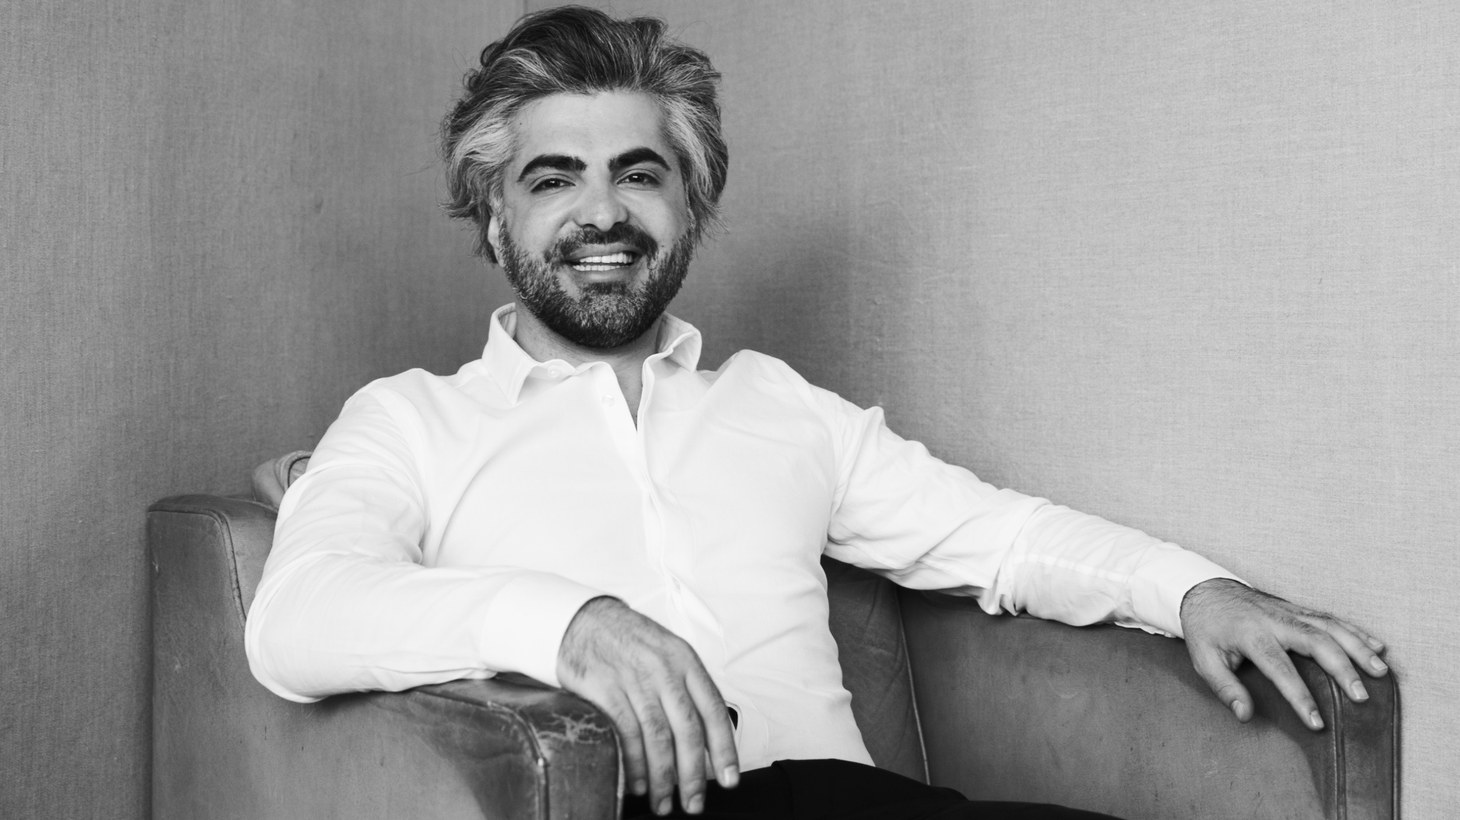 """Feras Fayyad, the Syrian director of the Oscar-nominated documentary """"The Cave,"""" was initially denied a visa to the U.S."""